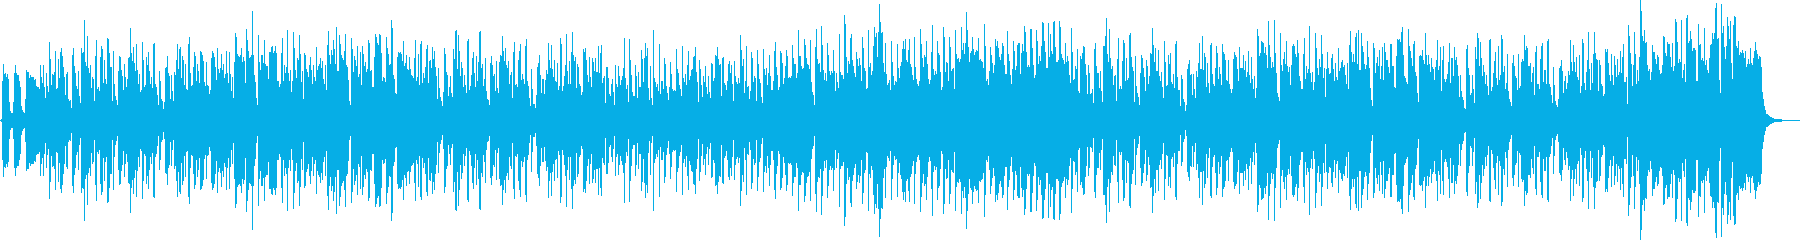 Country-style fun harmonica and fiddle's reproduced waveform